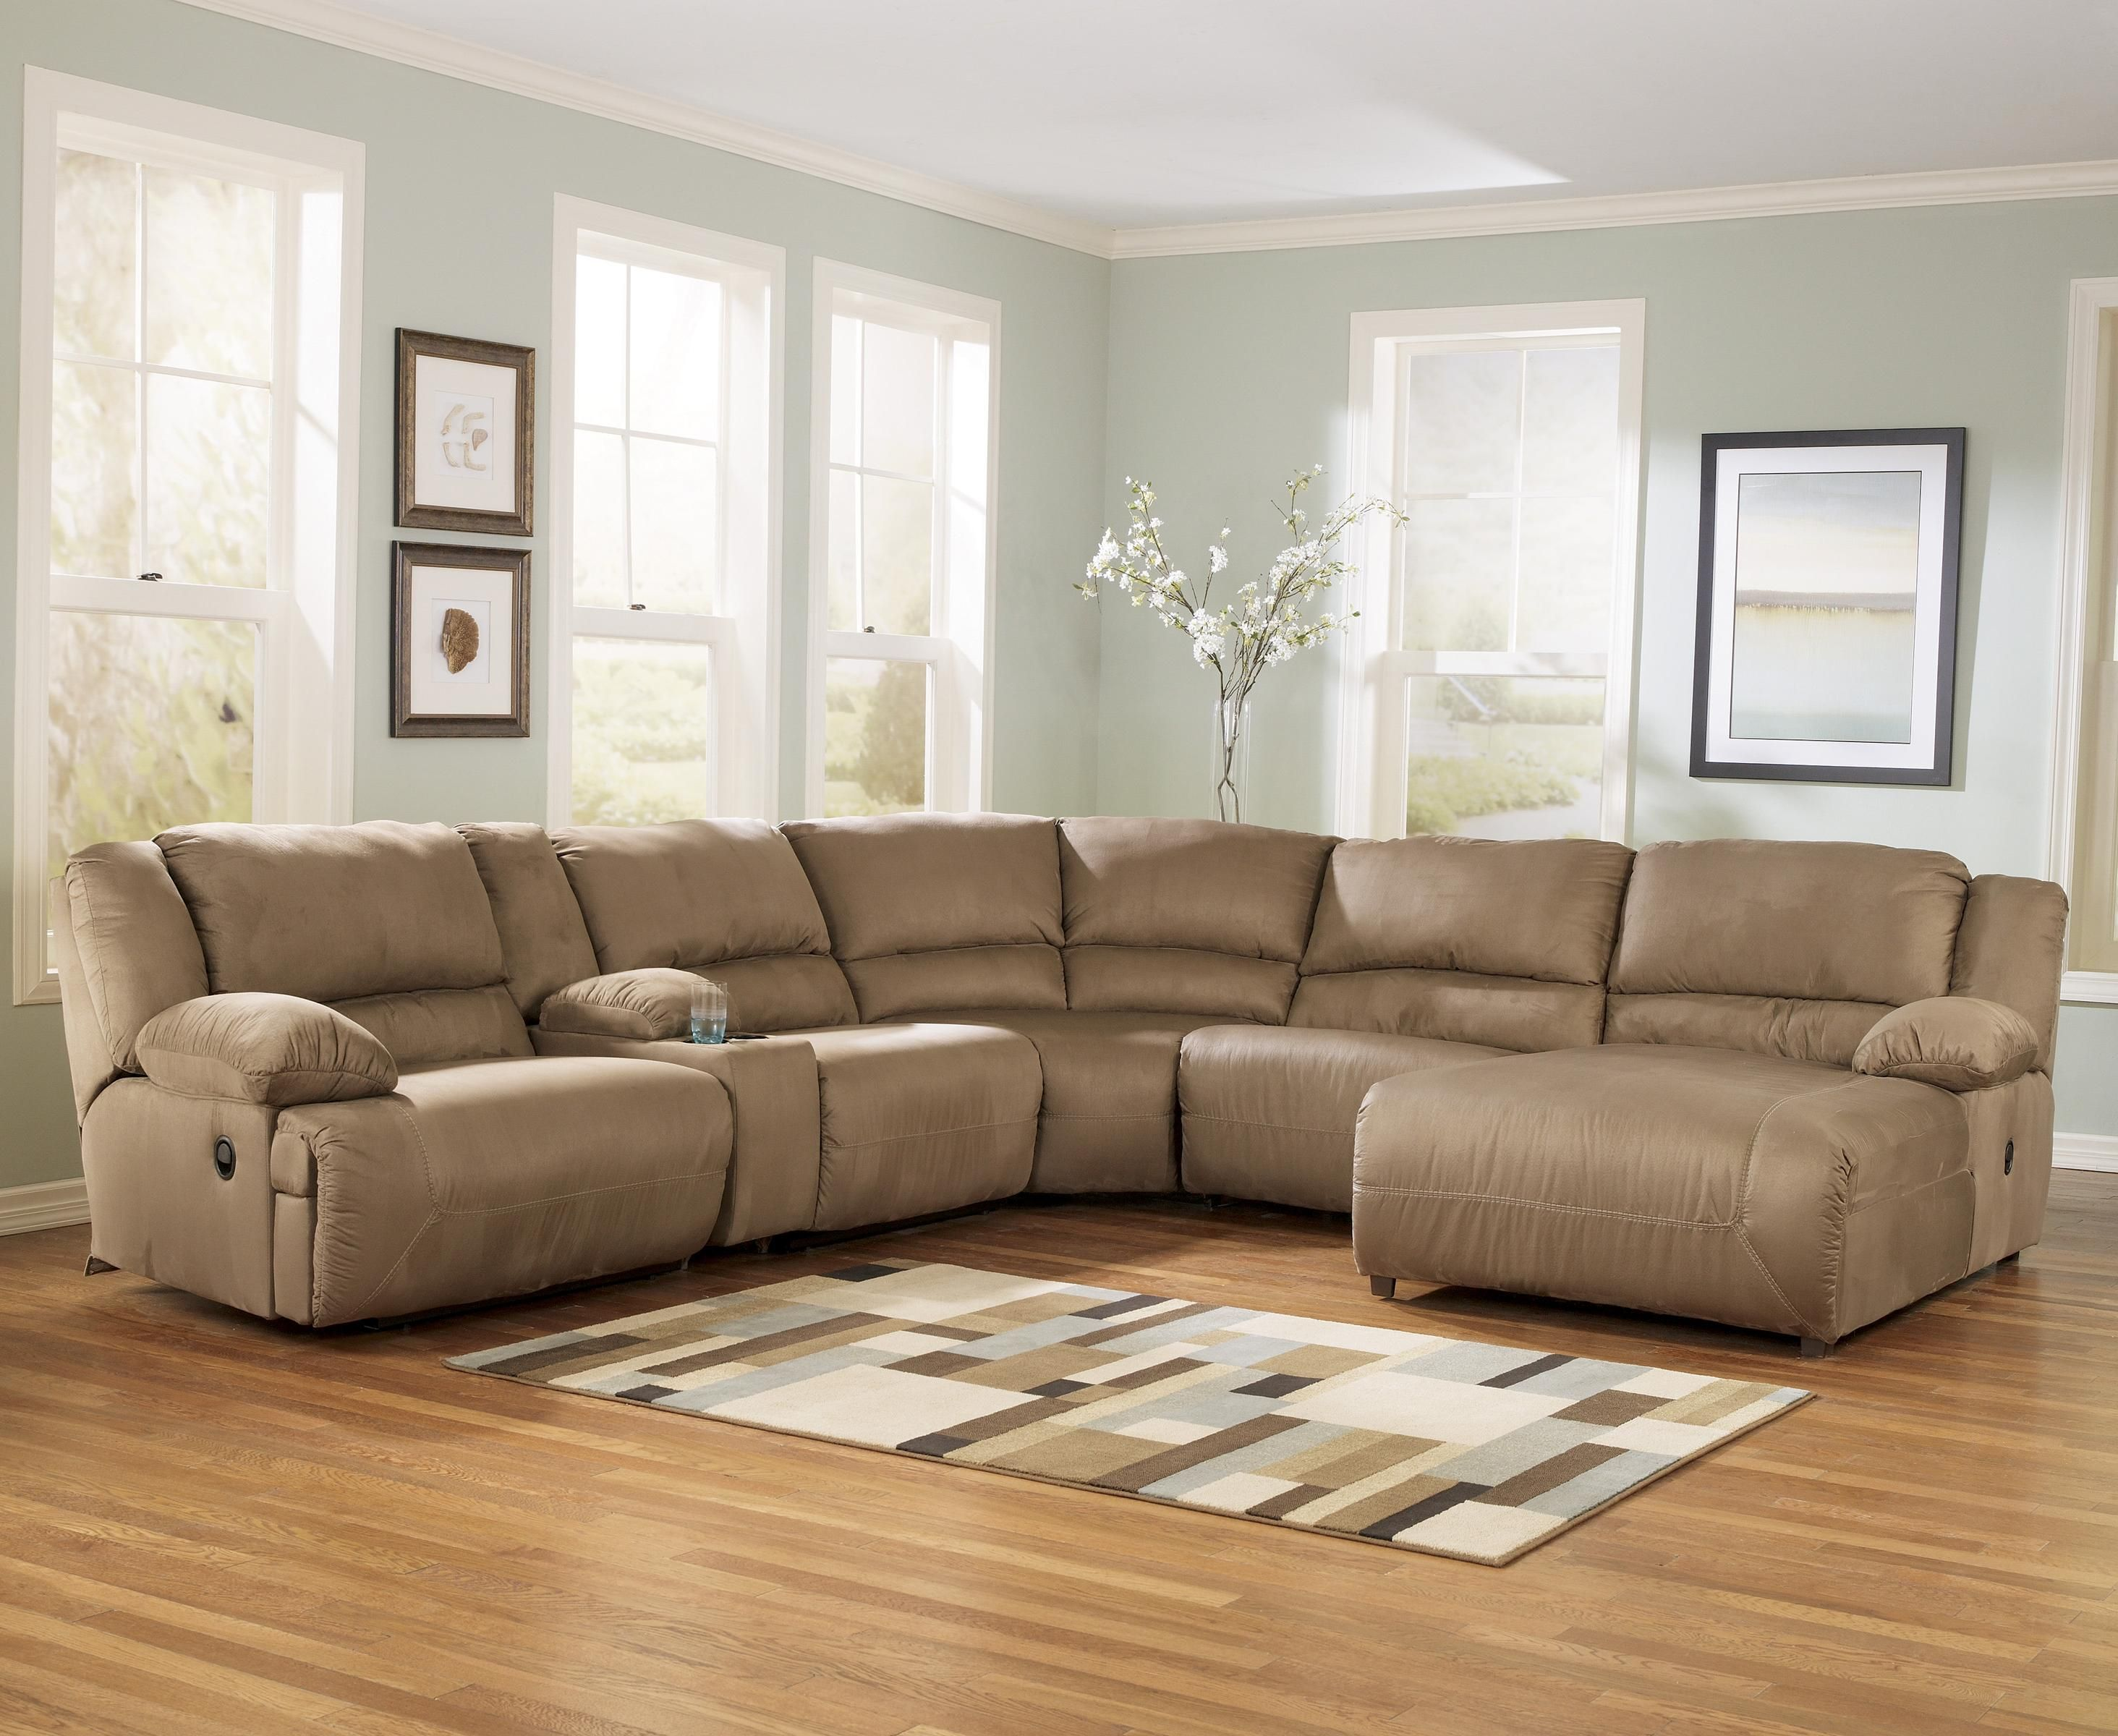 Cooldesign Recliner Sectional sofas